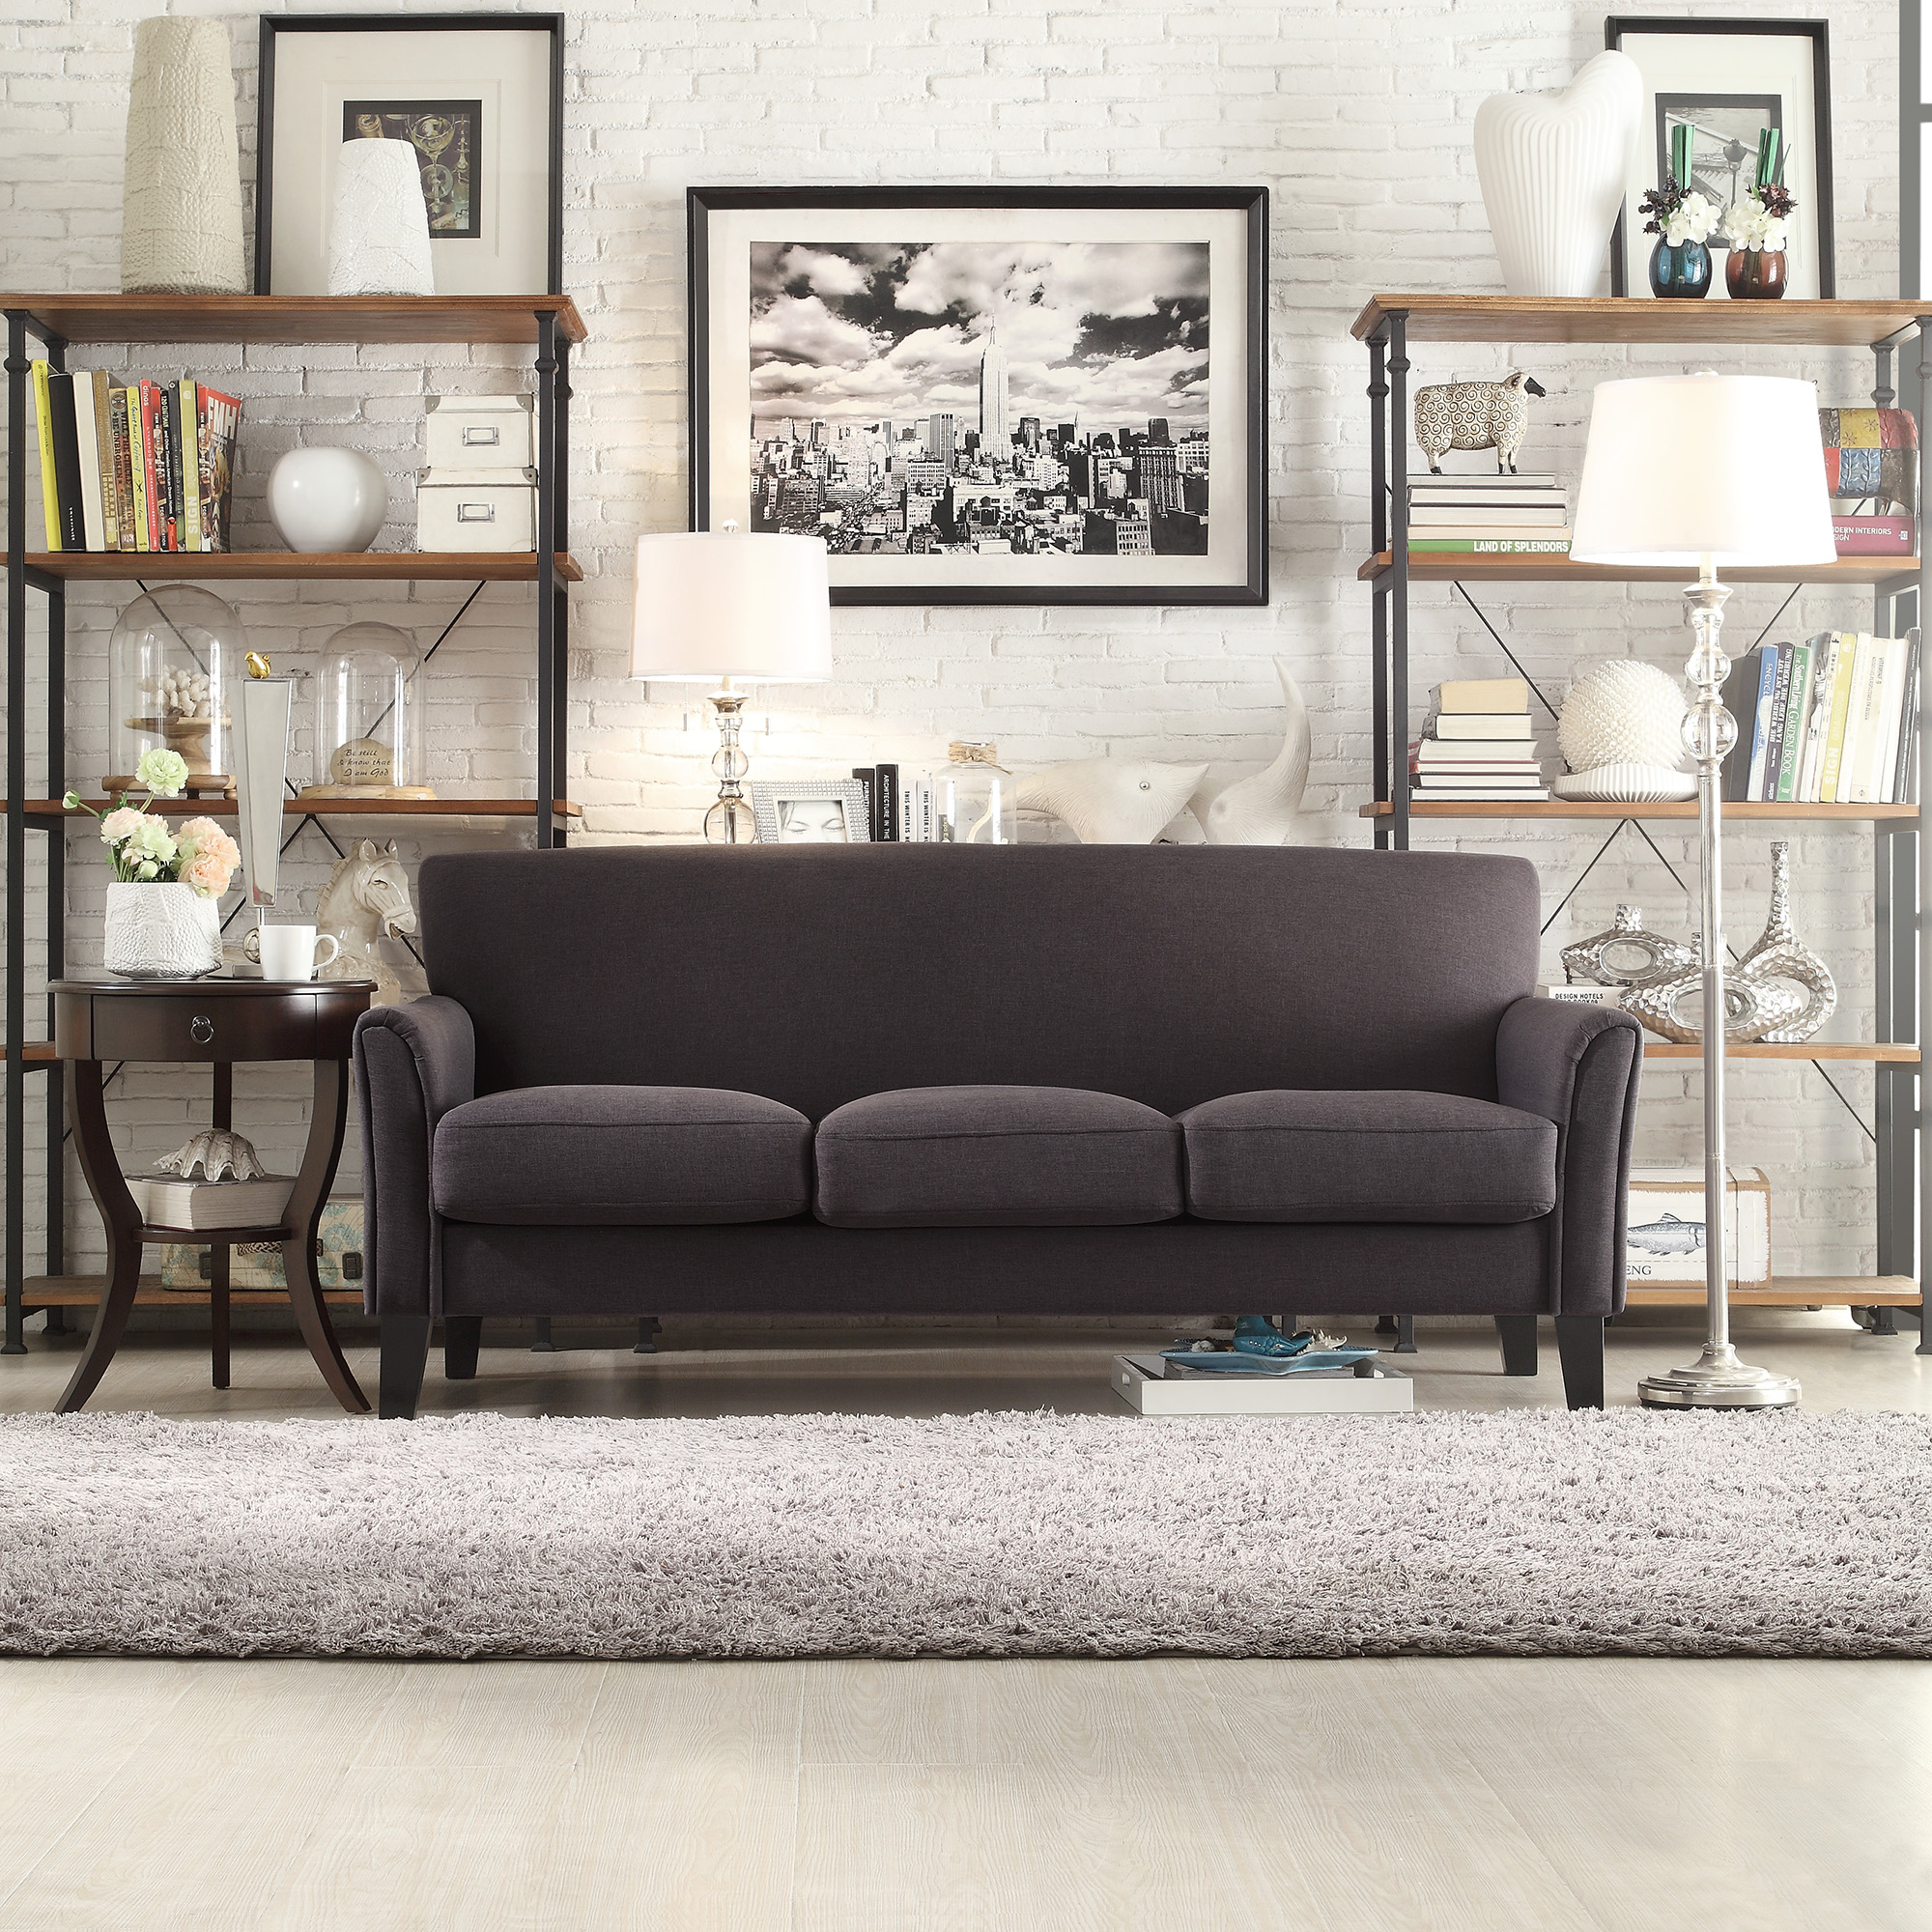 Weston Home Tribeca Living Room Upholstered Sofa, Dark Gray Linen -  Walmart.com